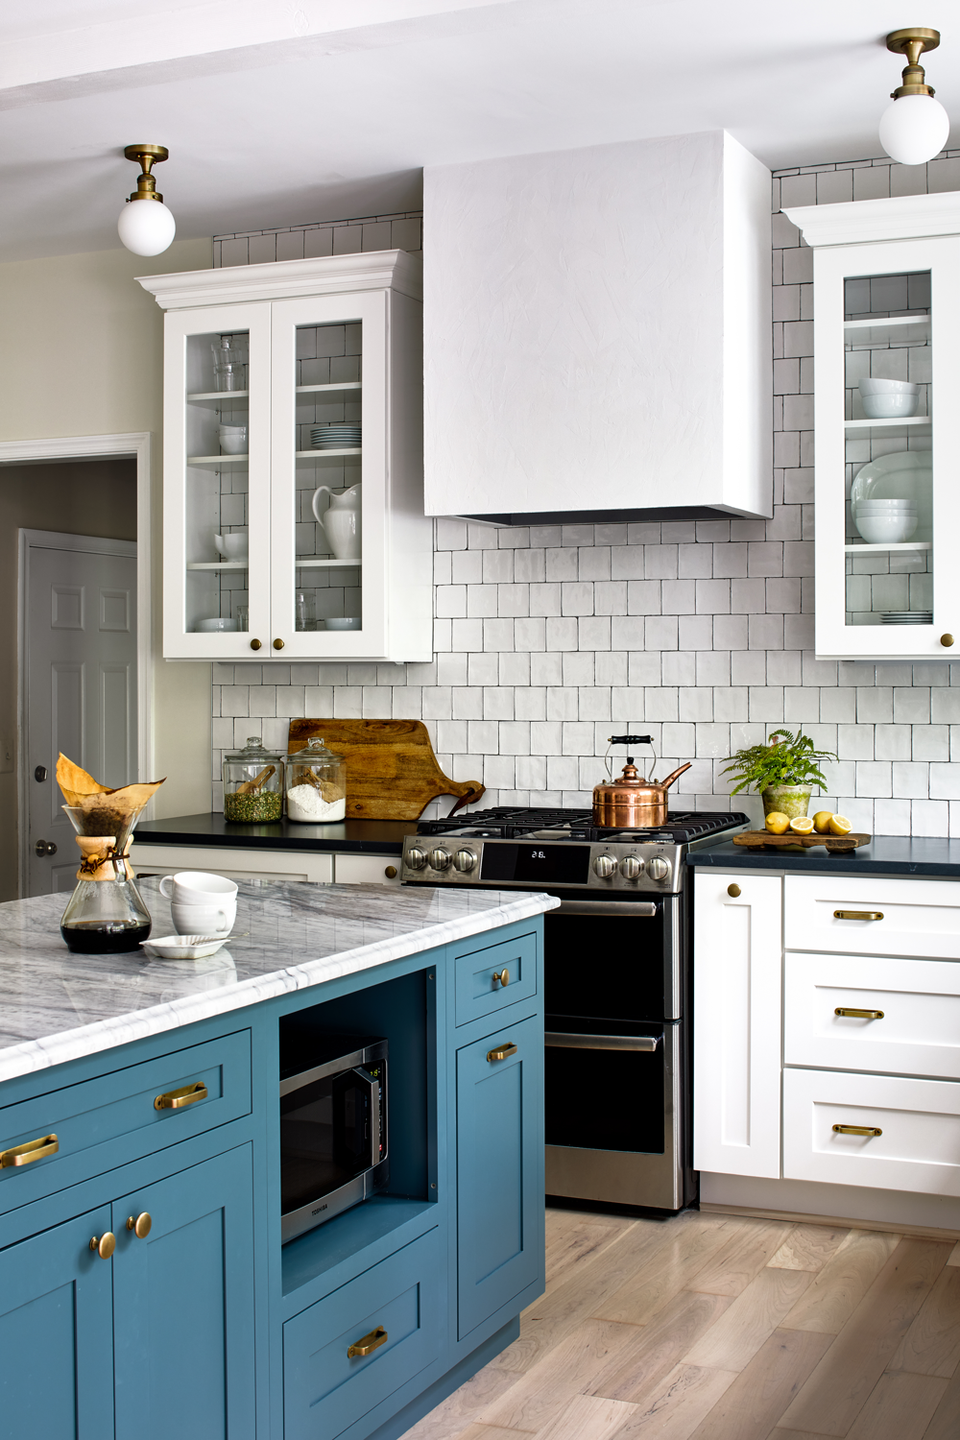 "<p>Try painting your kitchen island a striking color like <a href=""https://www.alisongieseinteriors.com/portfolio-unique-interior-design-northern-virginia"" rel=""nofollow noopener"" target=""_blank"" data-ylk=""slk:Alison Giese Interiors"" class=""link rapid-noclick-resp"">Alison Giese Interiors</a> did on this project. We love how it stands out and contrasts the other white cabinets.</p>"